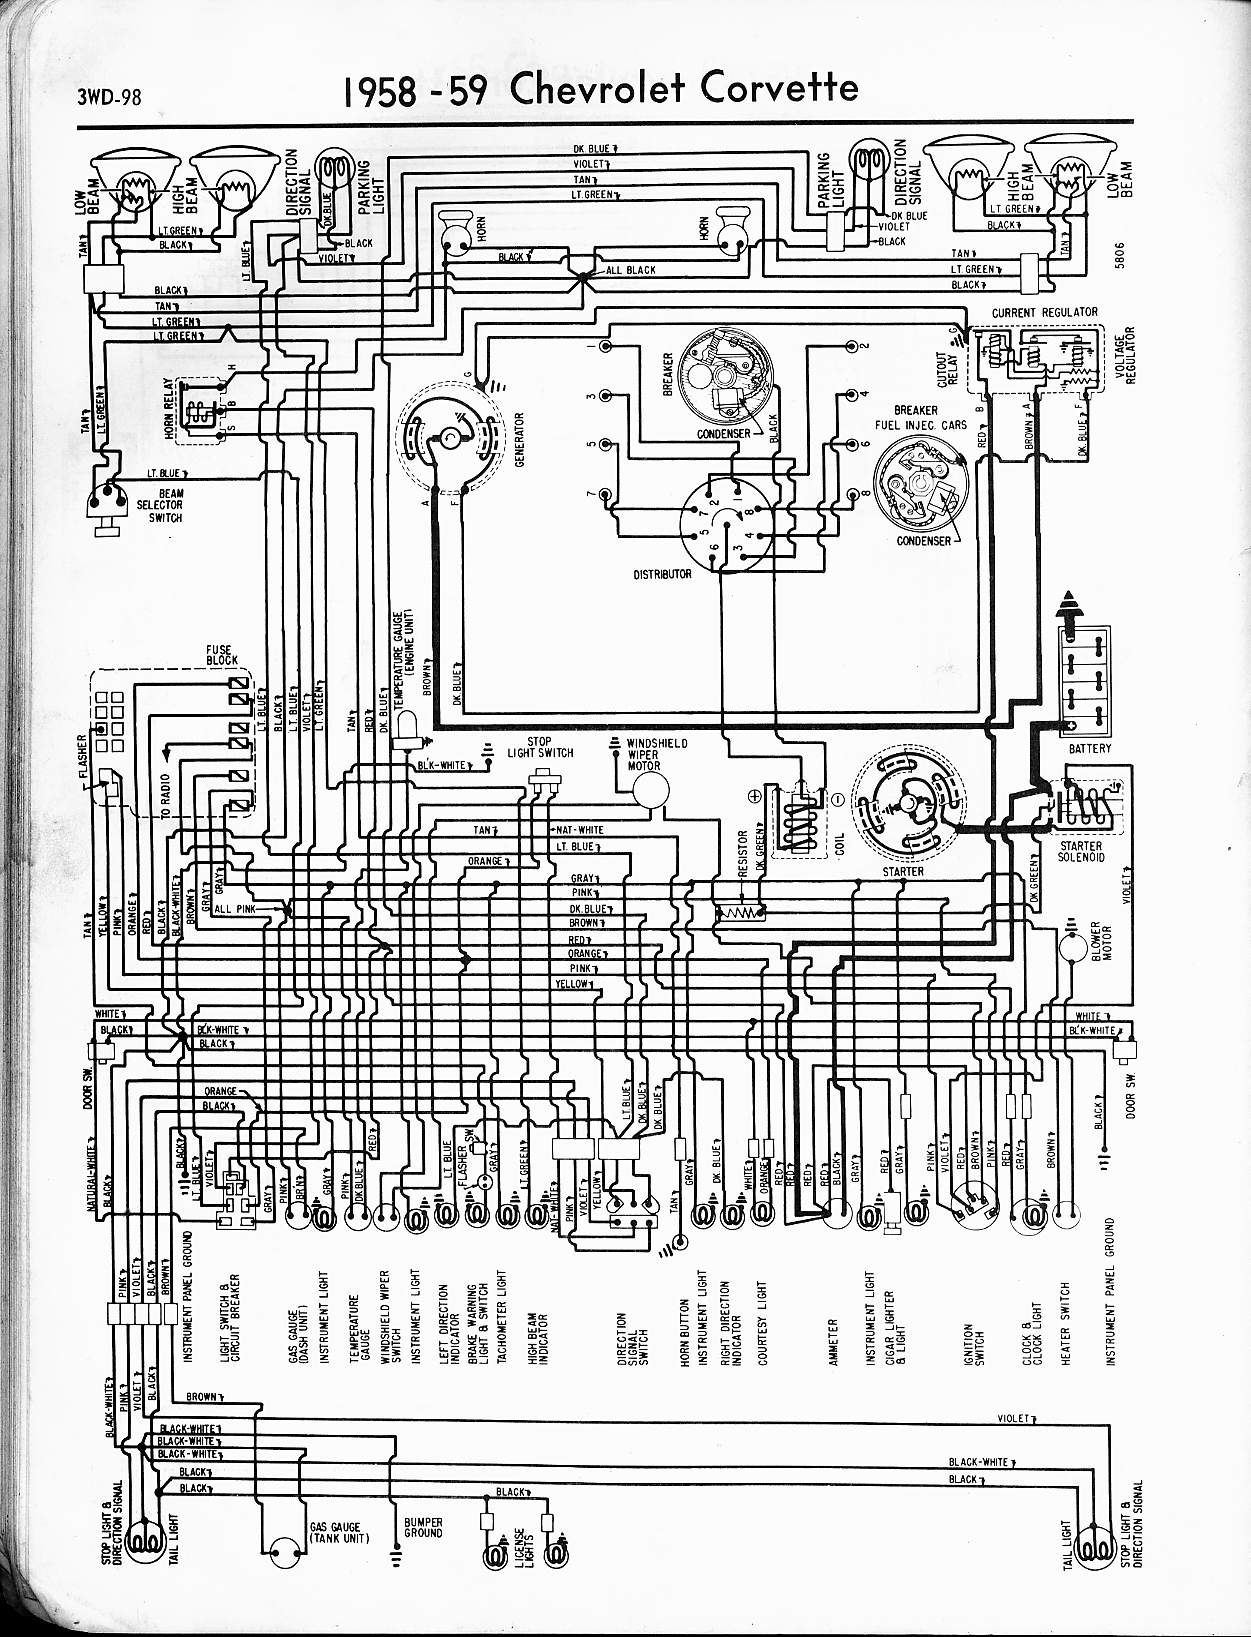 1959 Chevy Apache Headlight Wiring Diagram Libraries C 10 1970 58 Truck Third Level1958 Diagrams Schema